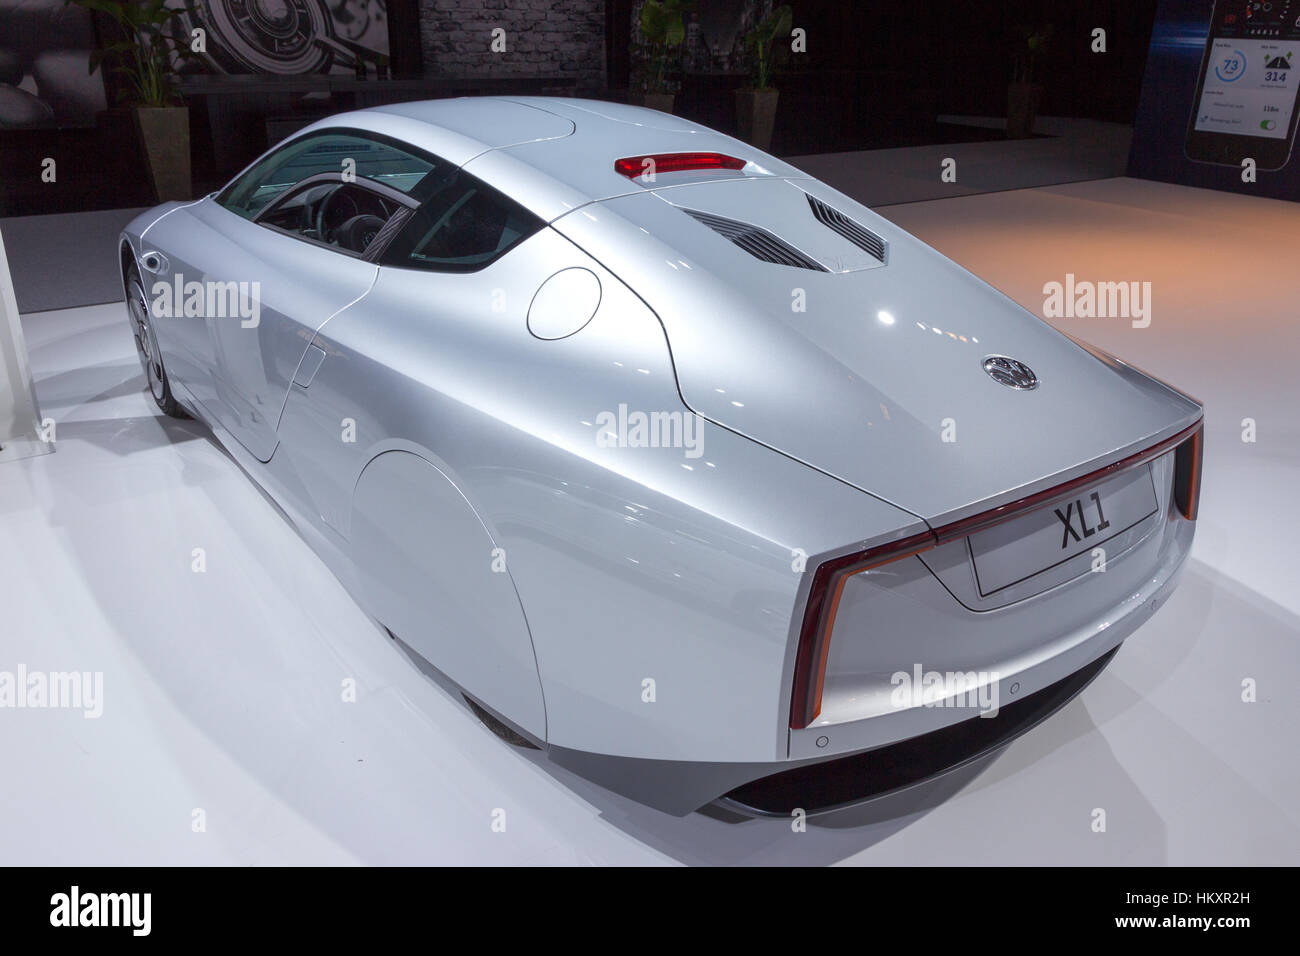 AMSTERDAM - APRIL 16, 2015: Volkswagen XL1 car at the AutoRAI 2015. The XL1 is a two-person limited production diesel - Stock Image